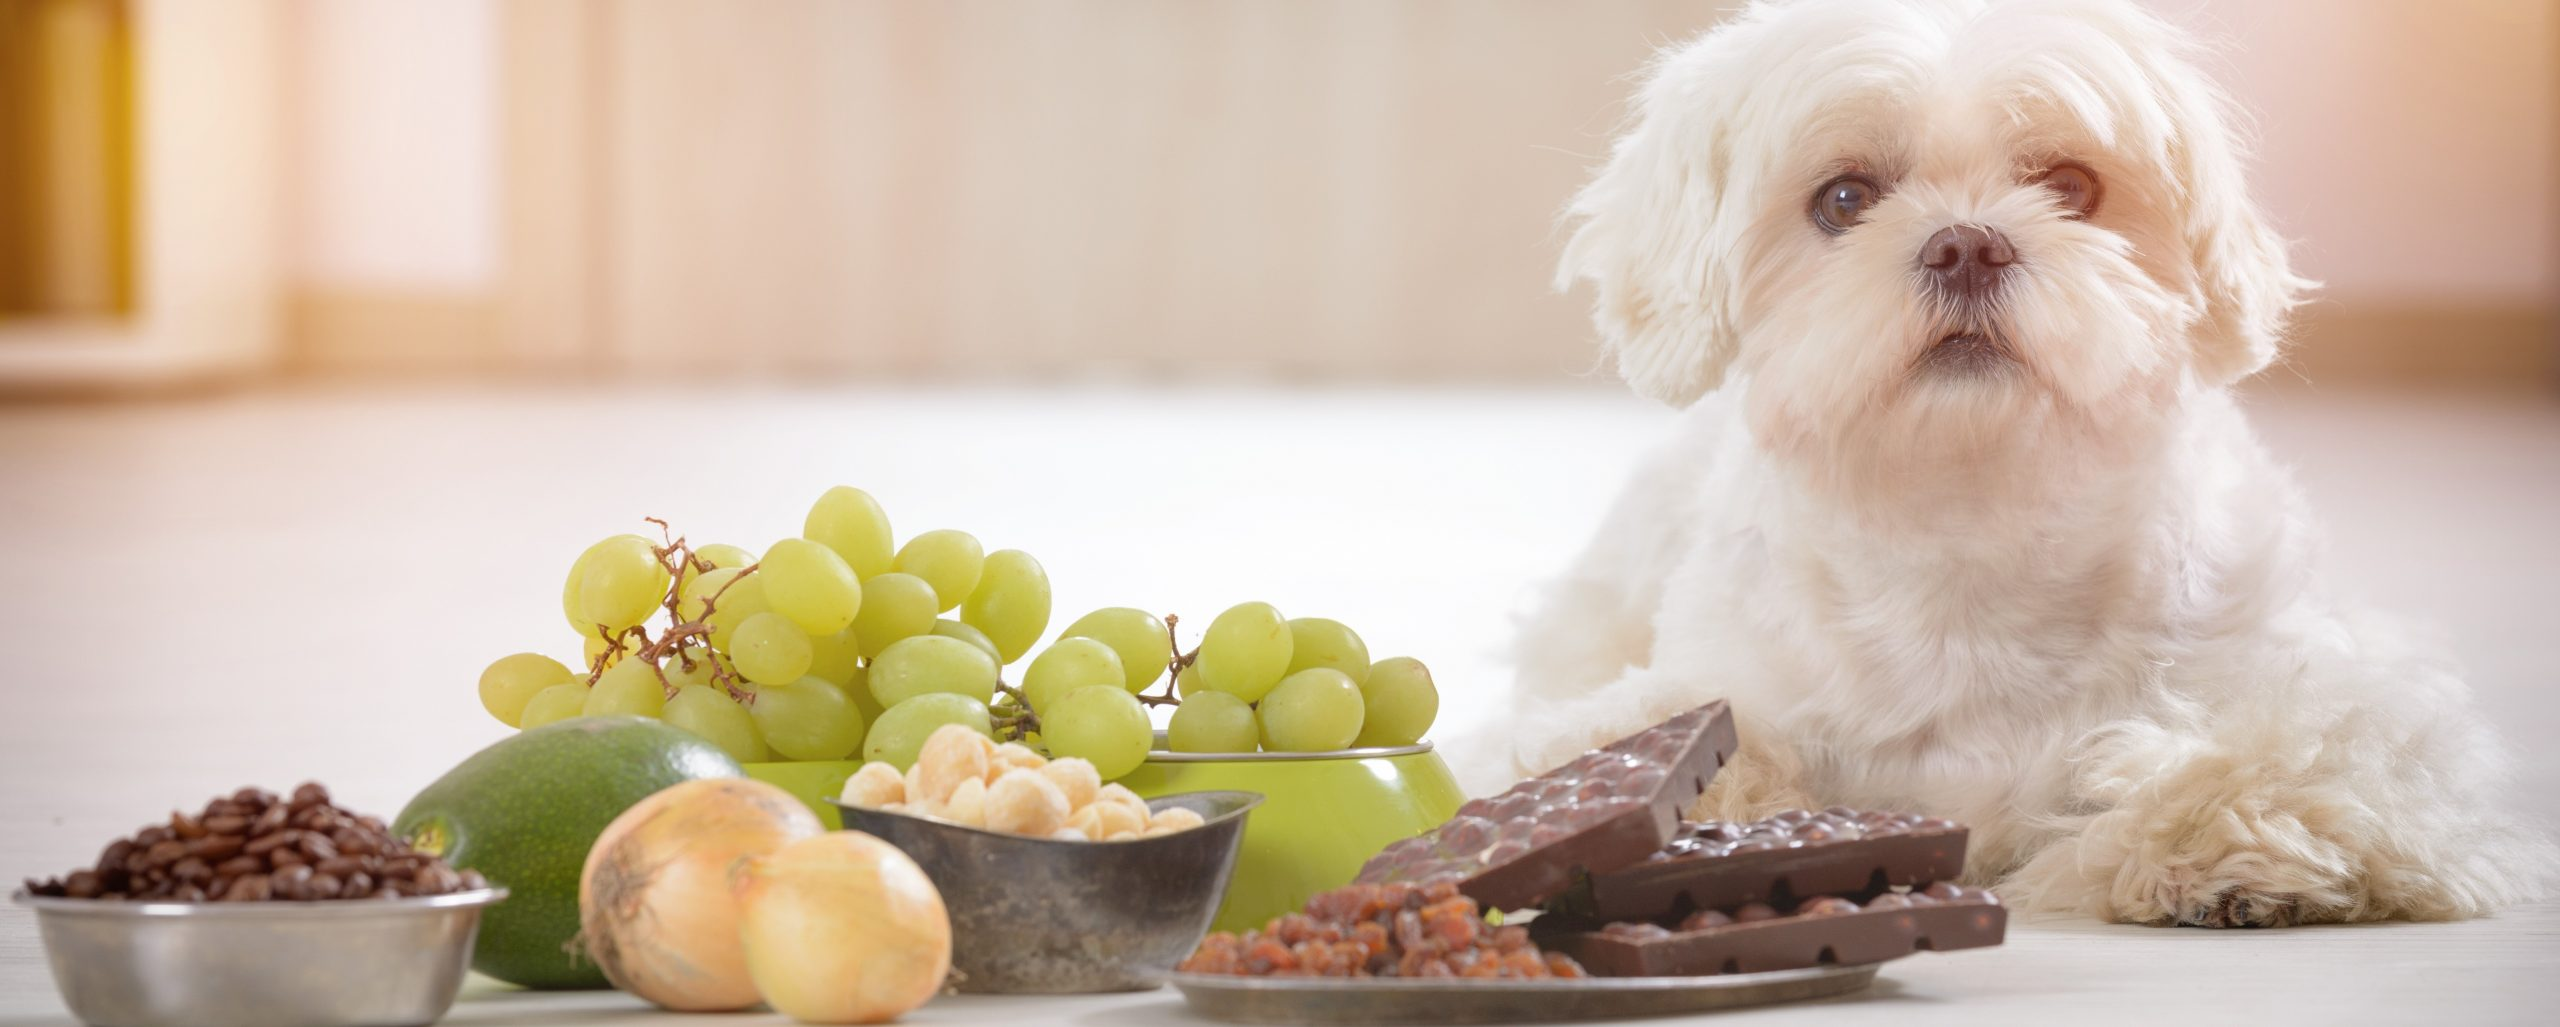 6 Harmful Foods to Never Feed Your Dog